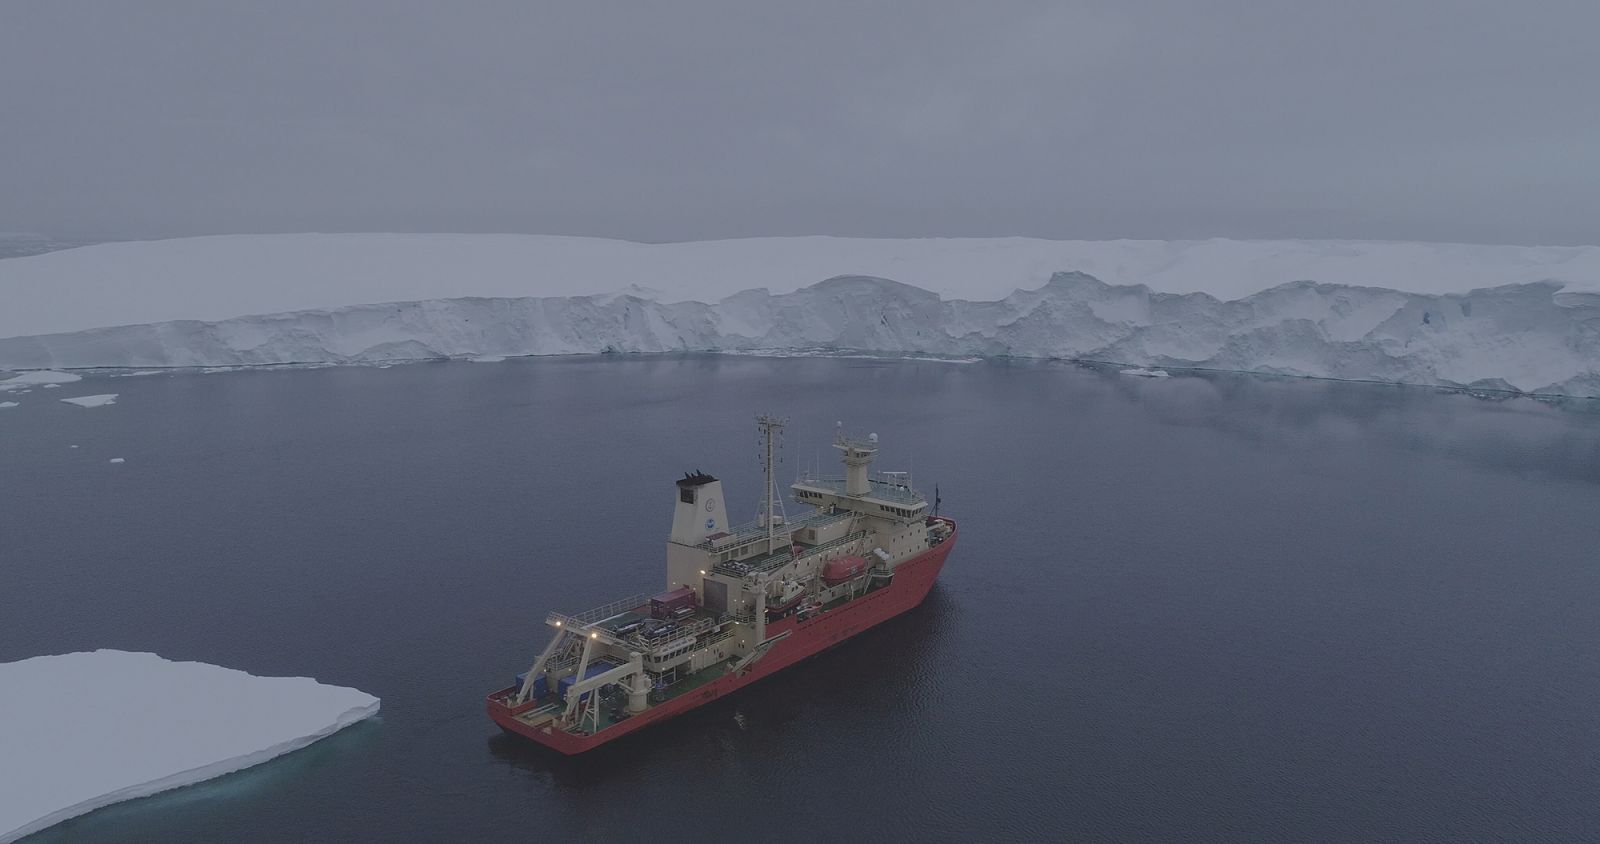 The Nathaniel B. Palmer, the icebreaker that carried Snow to Thwaites Glacier in Antarctica, at the ice front of the Thwaites ice shelf.